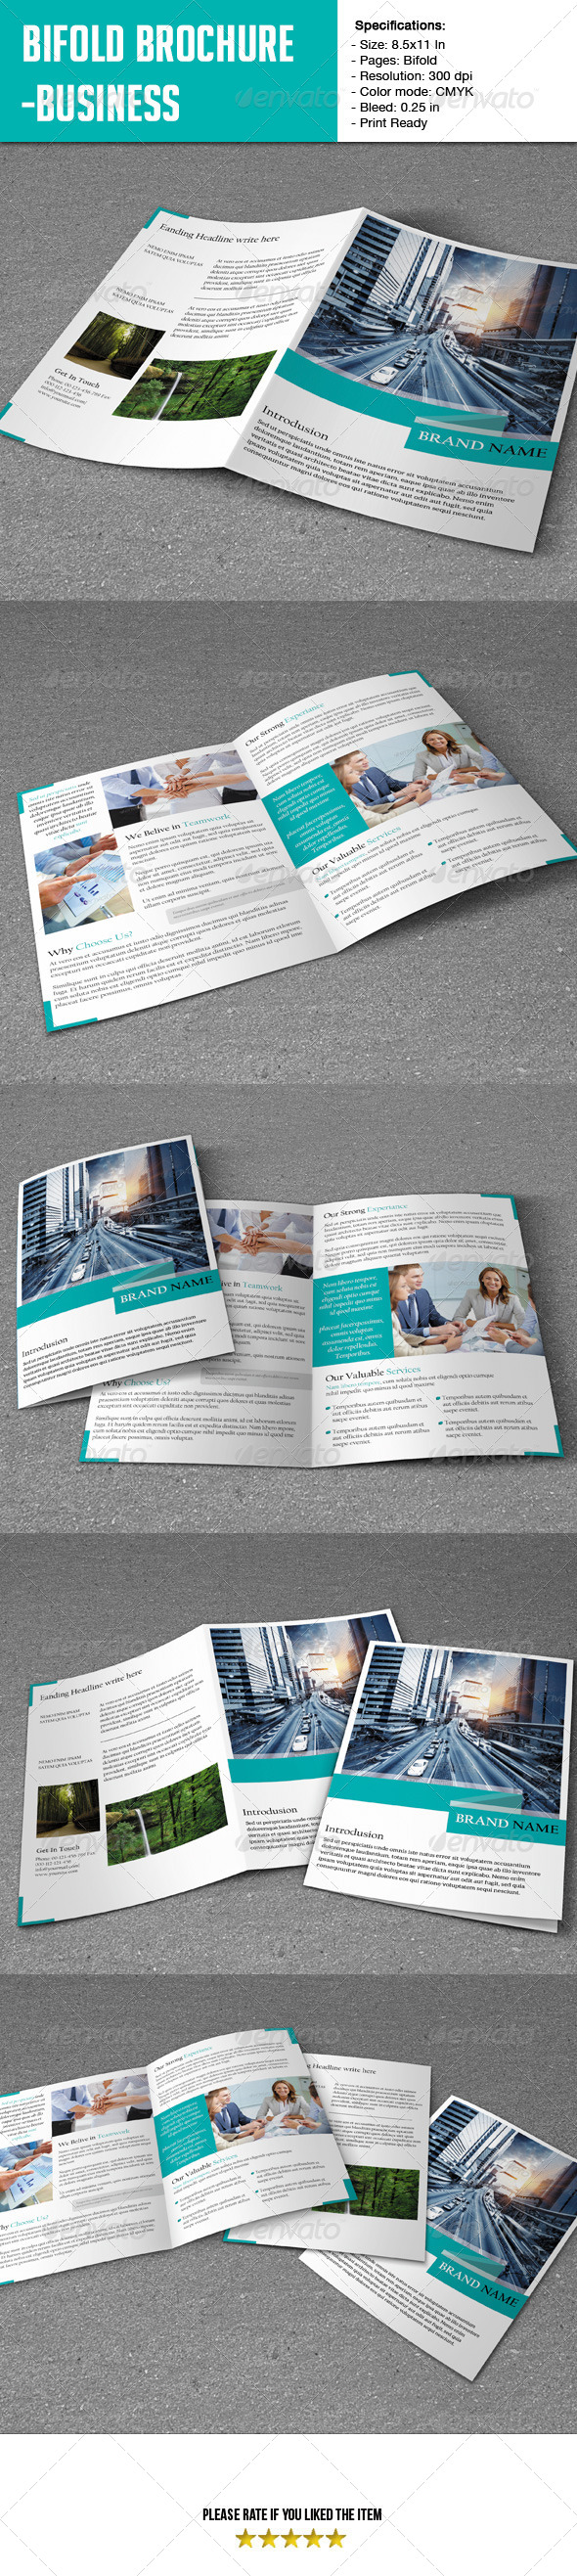 GraphicRiver Bifold Brochure- Business 6672358